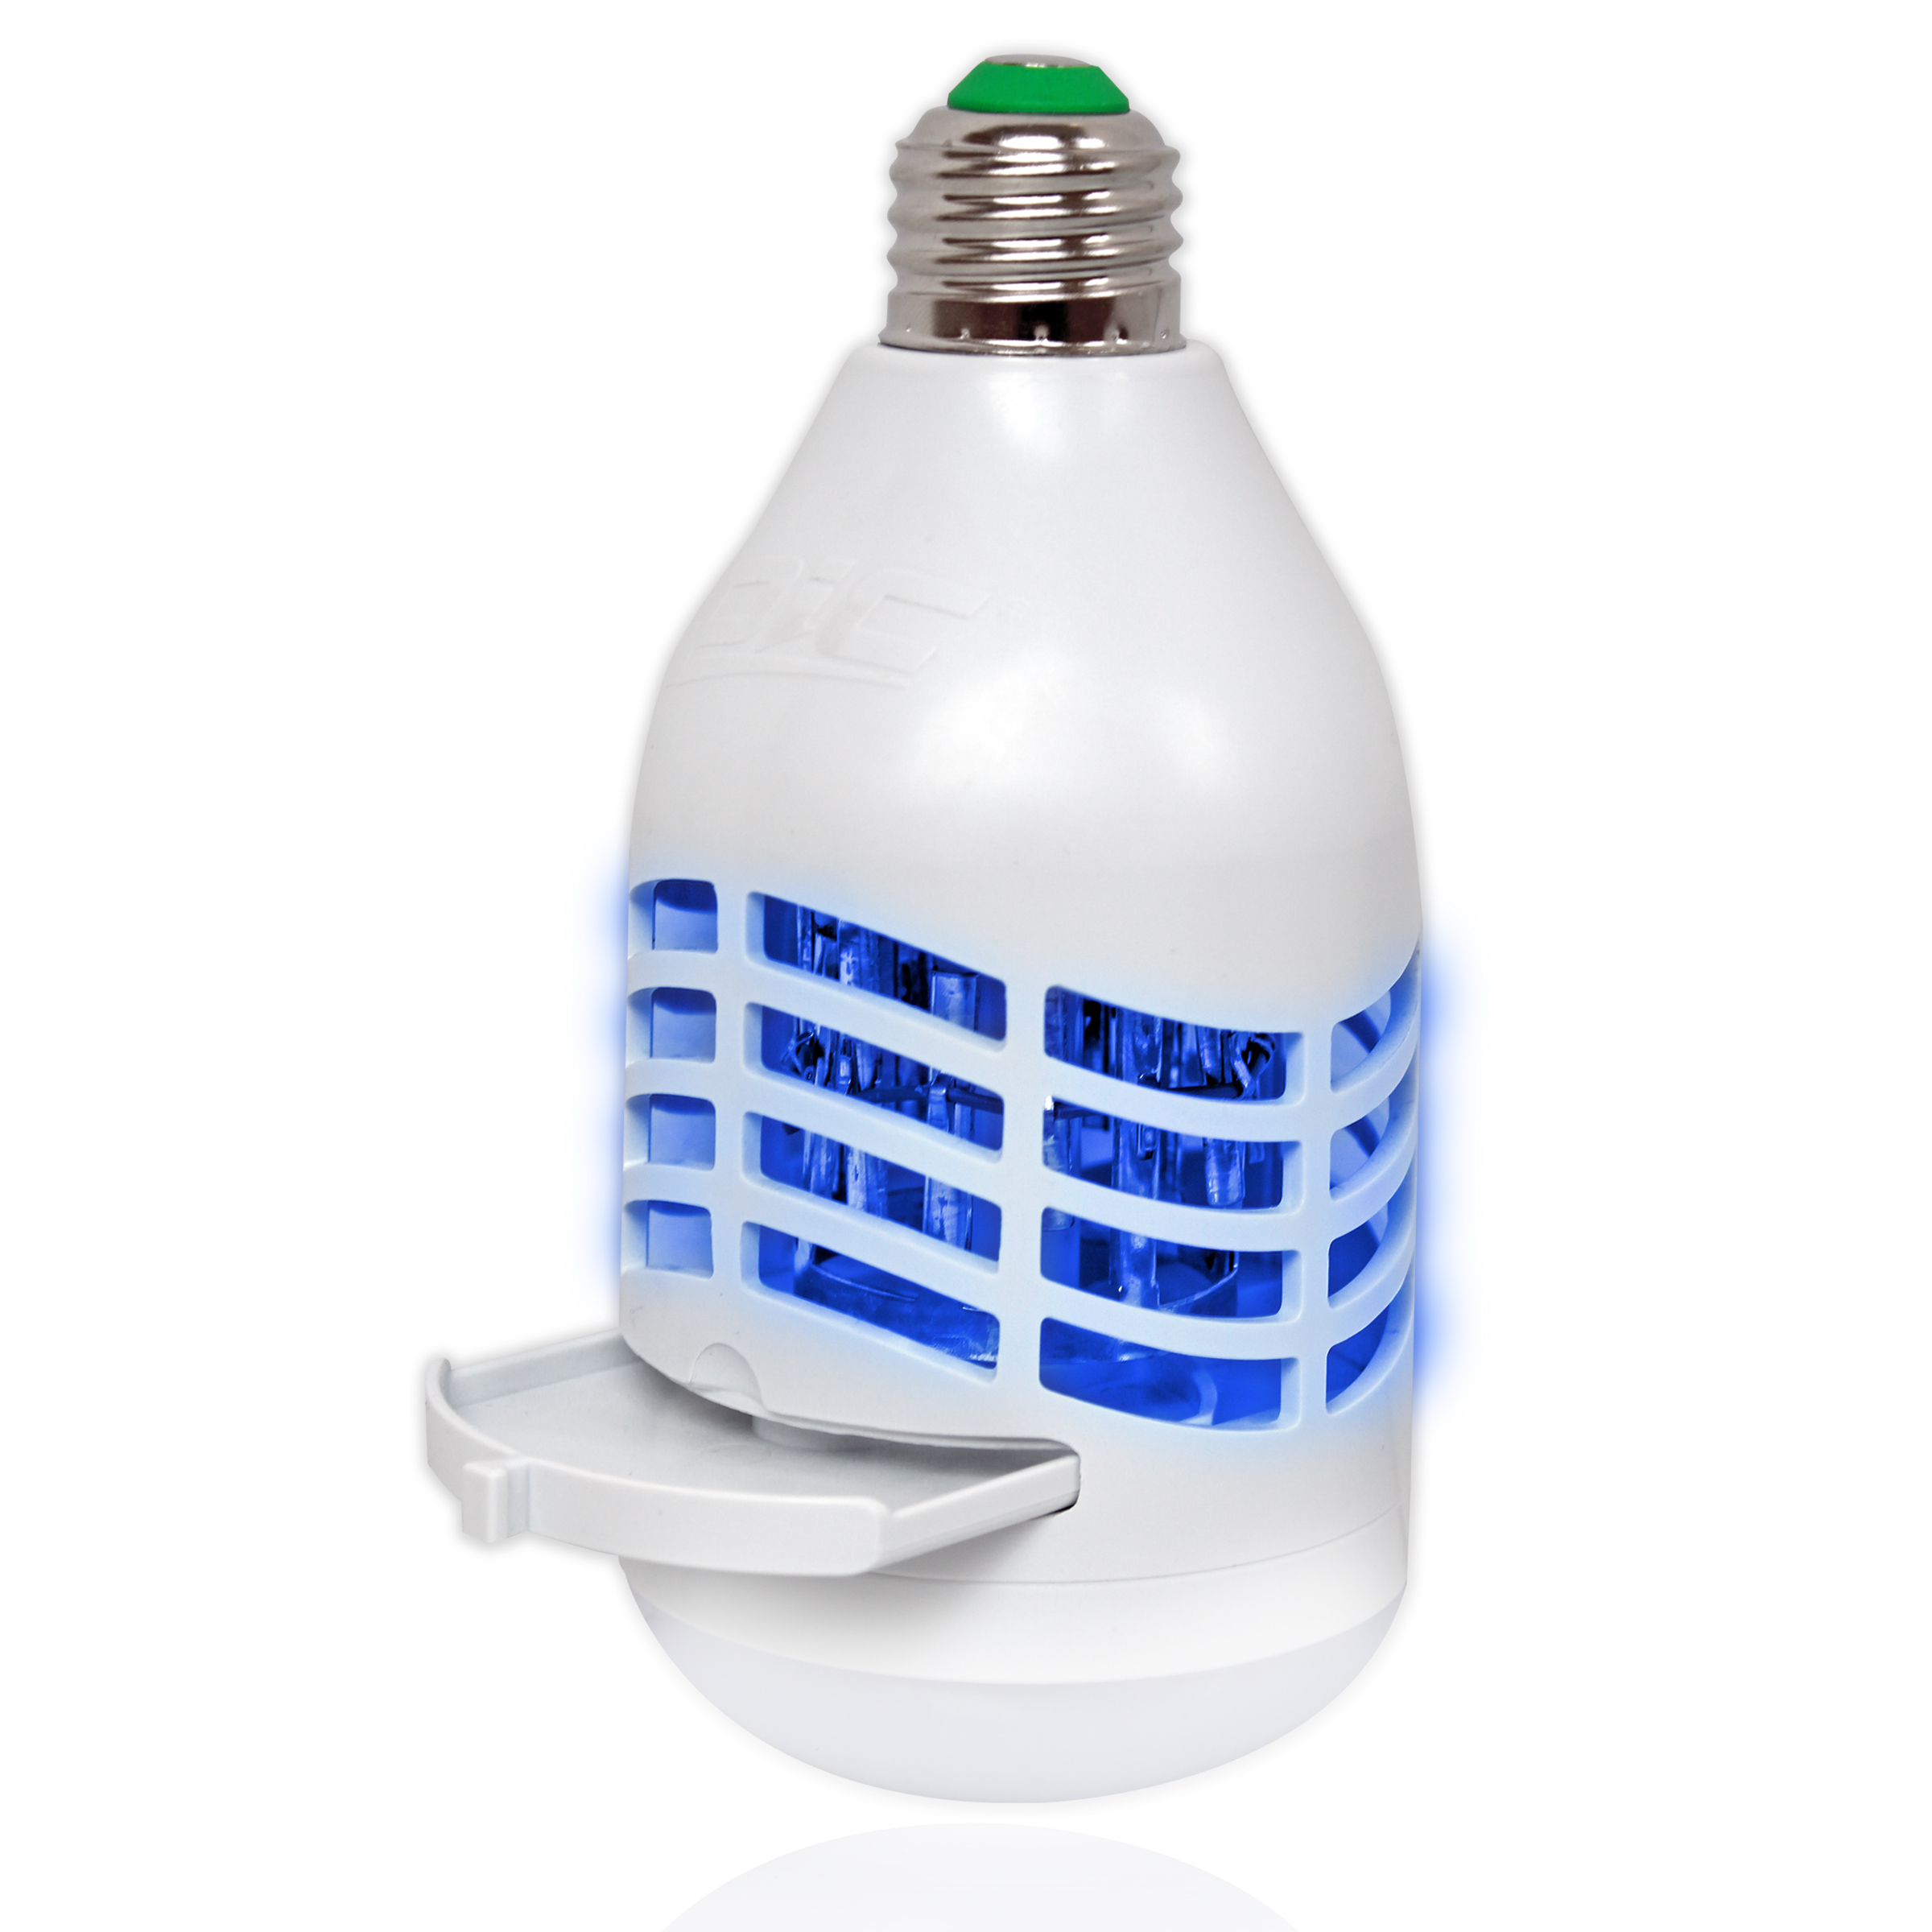 PIC Insect Killer LED & Bug Zapper | Two Pack